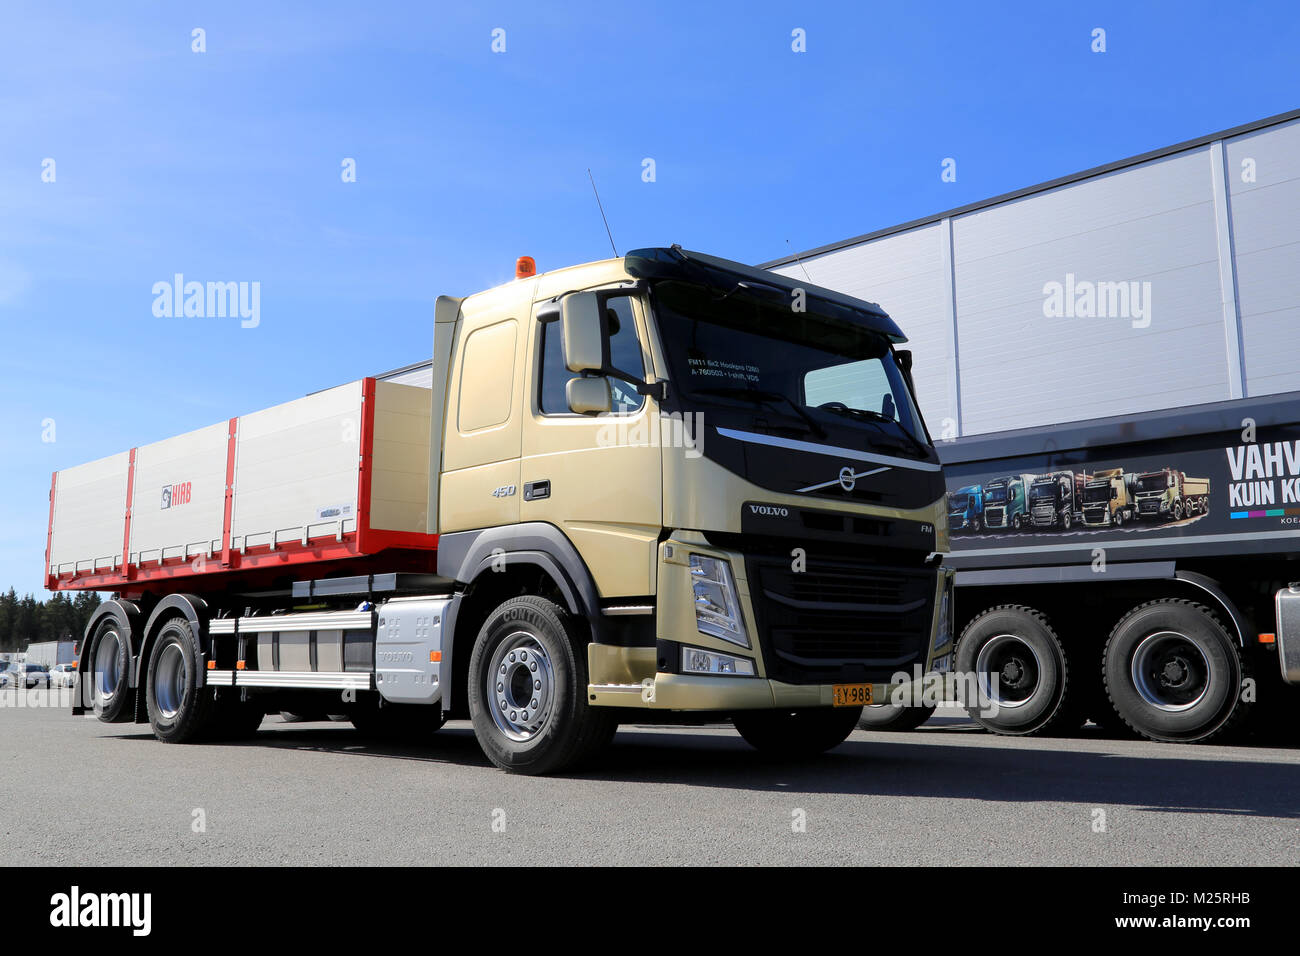 volvo fm stockfotos volvo fm bilder alamy. Black Bedroom Furniture Sets. Home Design Ideas